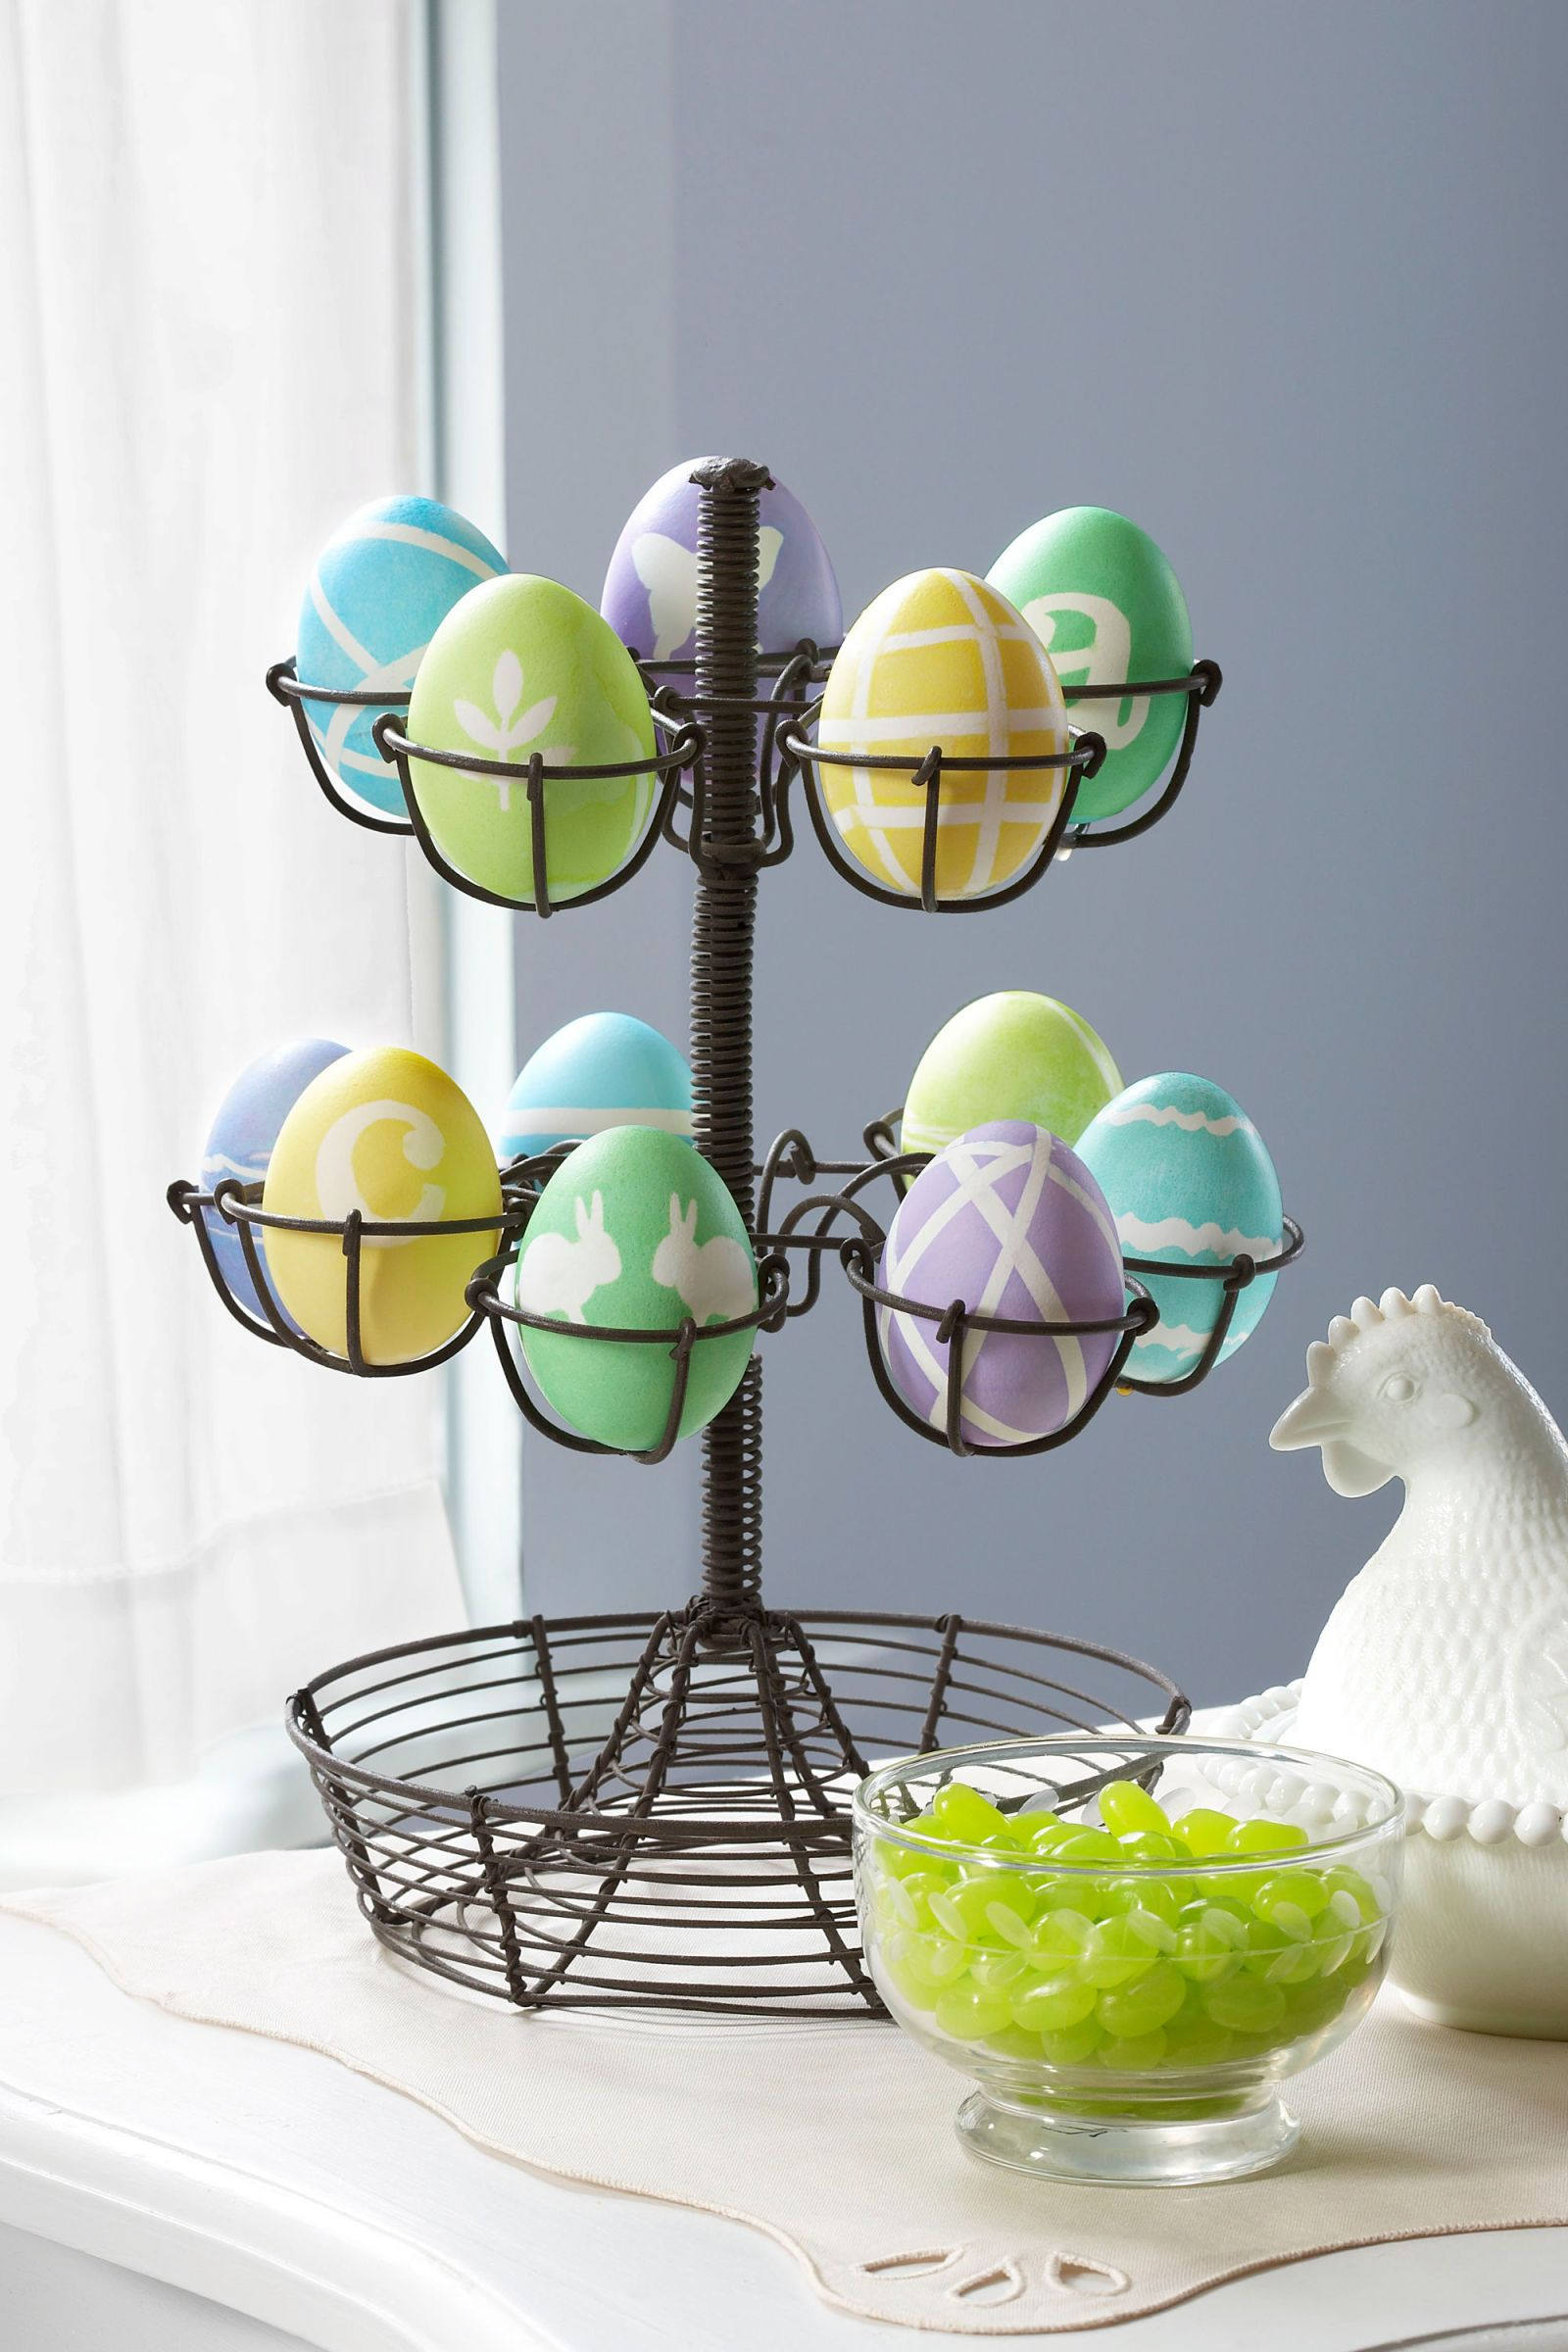 Easy Easter ideas to decorate your home Easy Easter ideas to decorate your home new foto